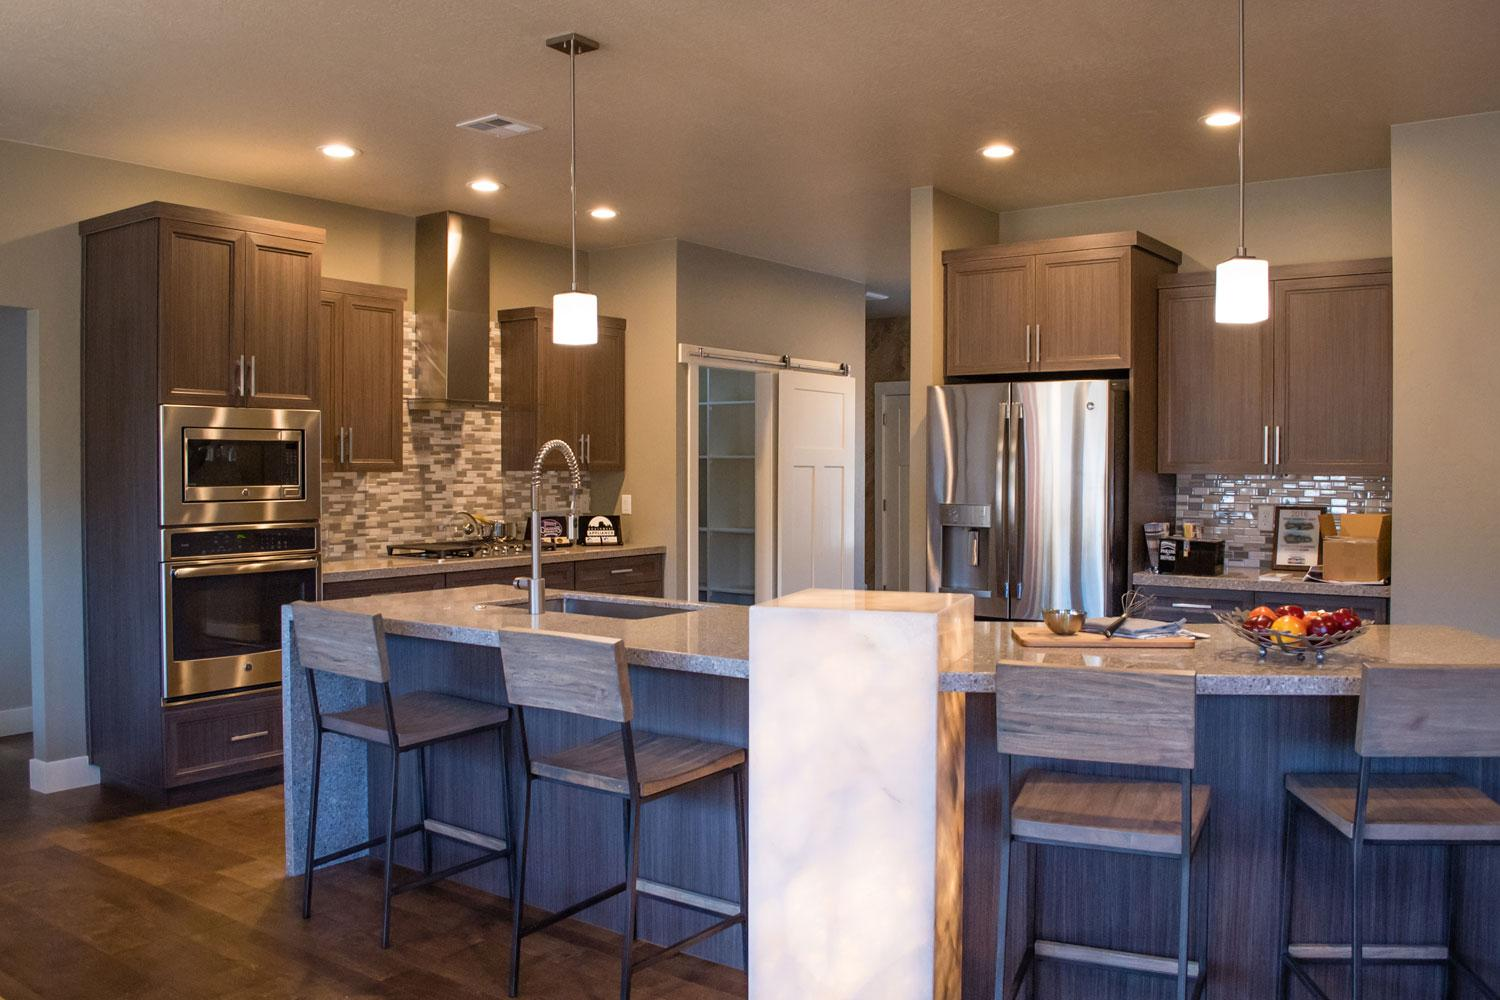 kitchen counter area for dining with four dark brown bar stools